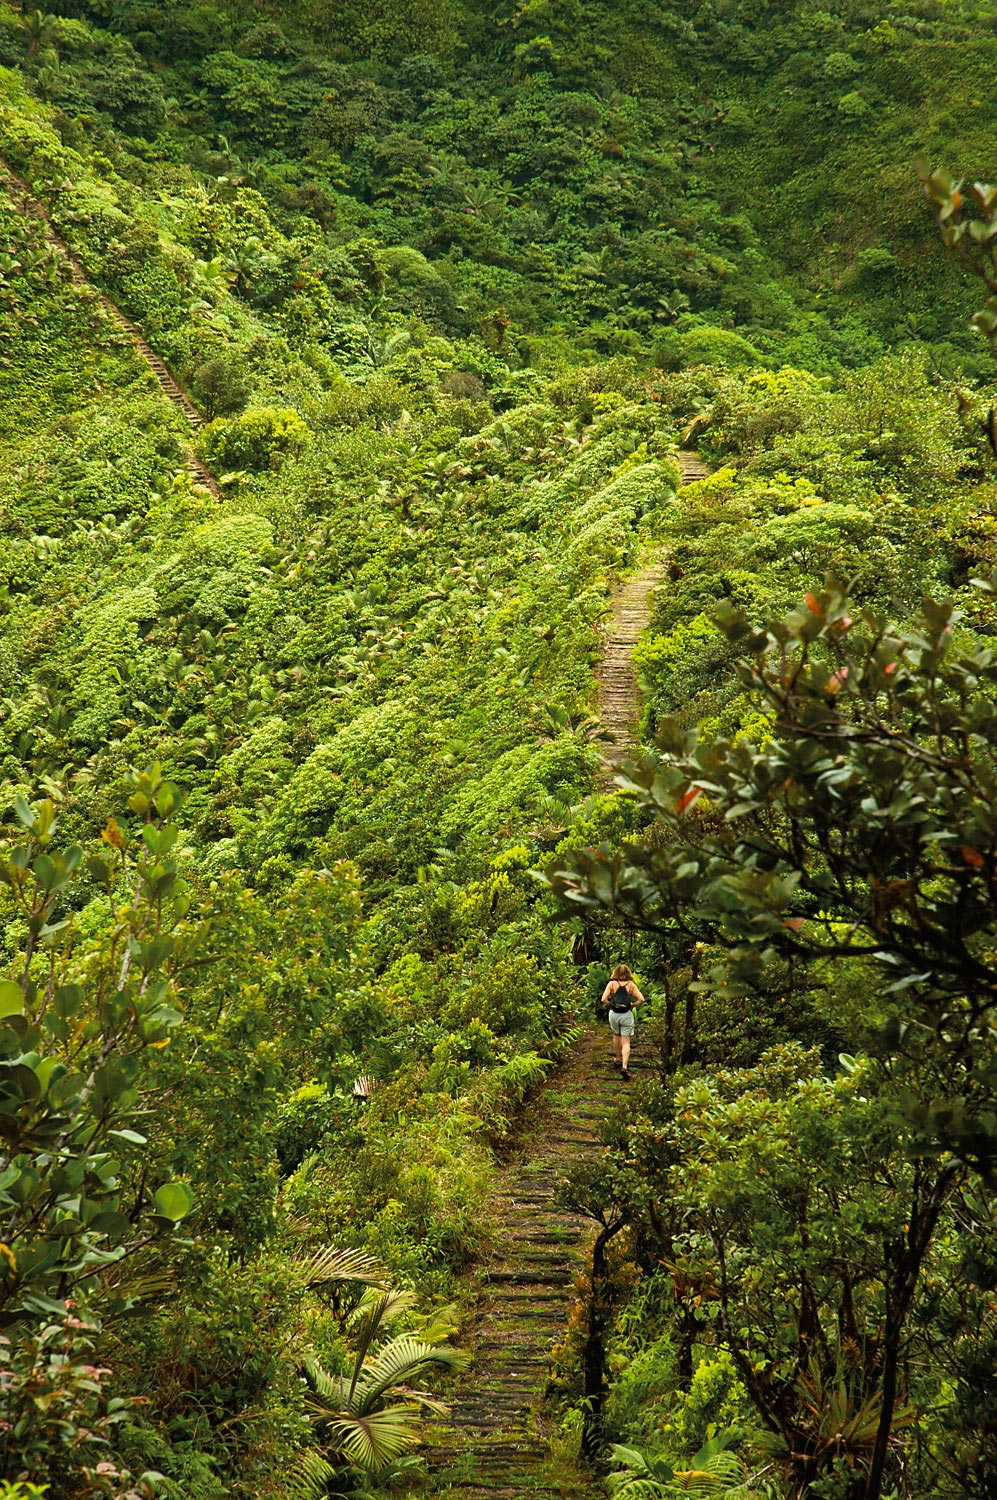 Much of the trail is built on old footpaths used to get around Dominica before paved roads. Photograph by Images Dominica